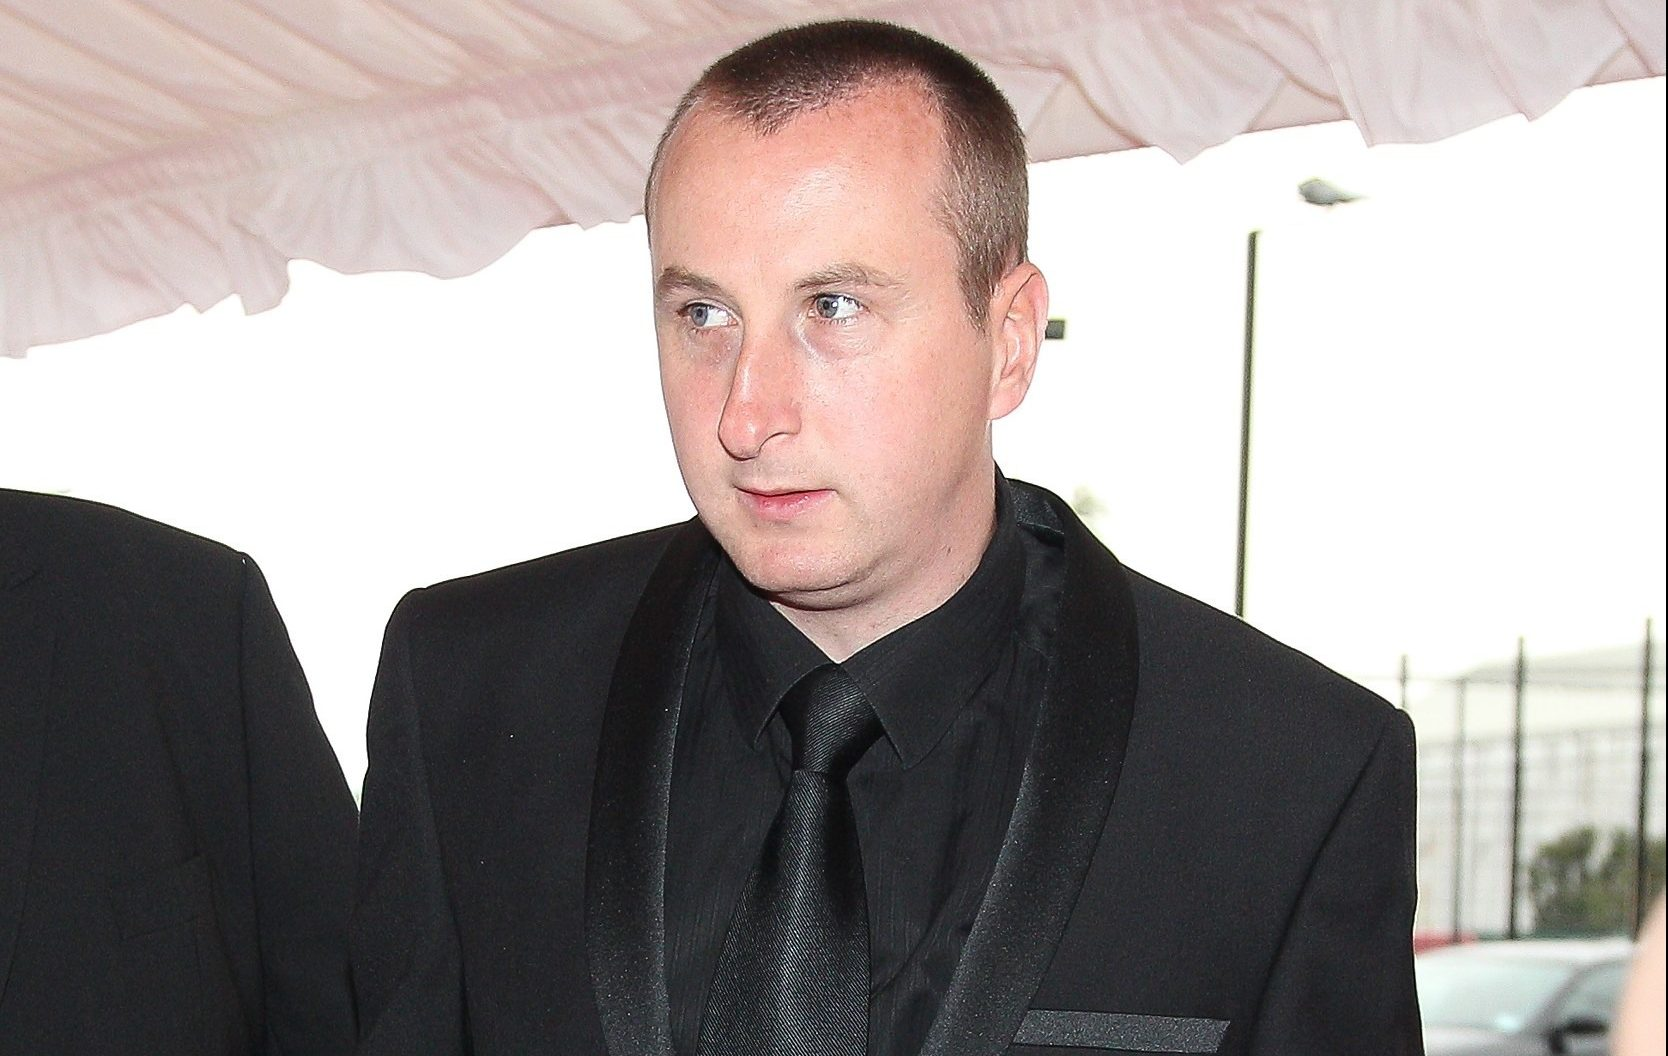 Coronavirus: Andy Whyment reveals it's been a 'tough week' on the Coronation Street set